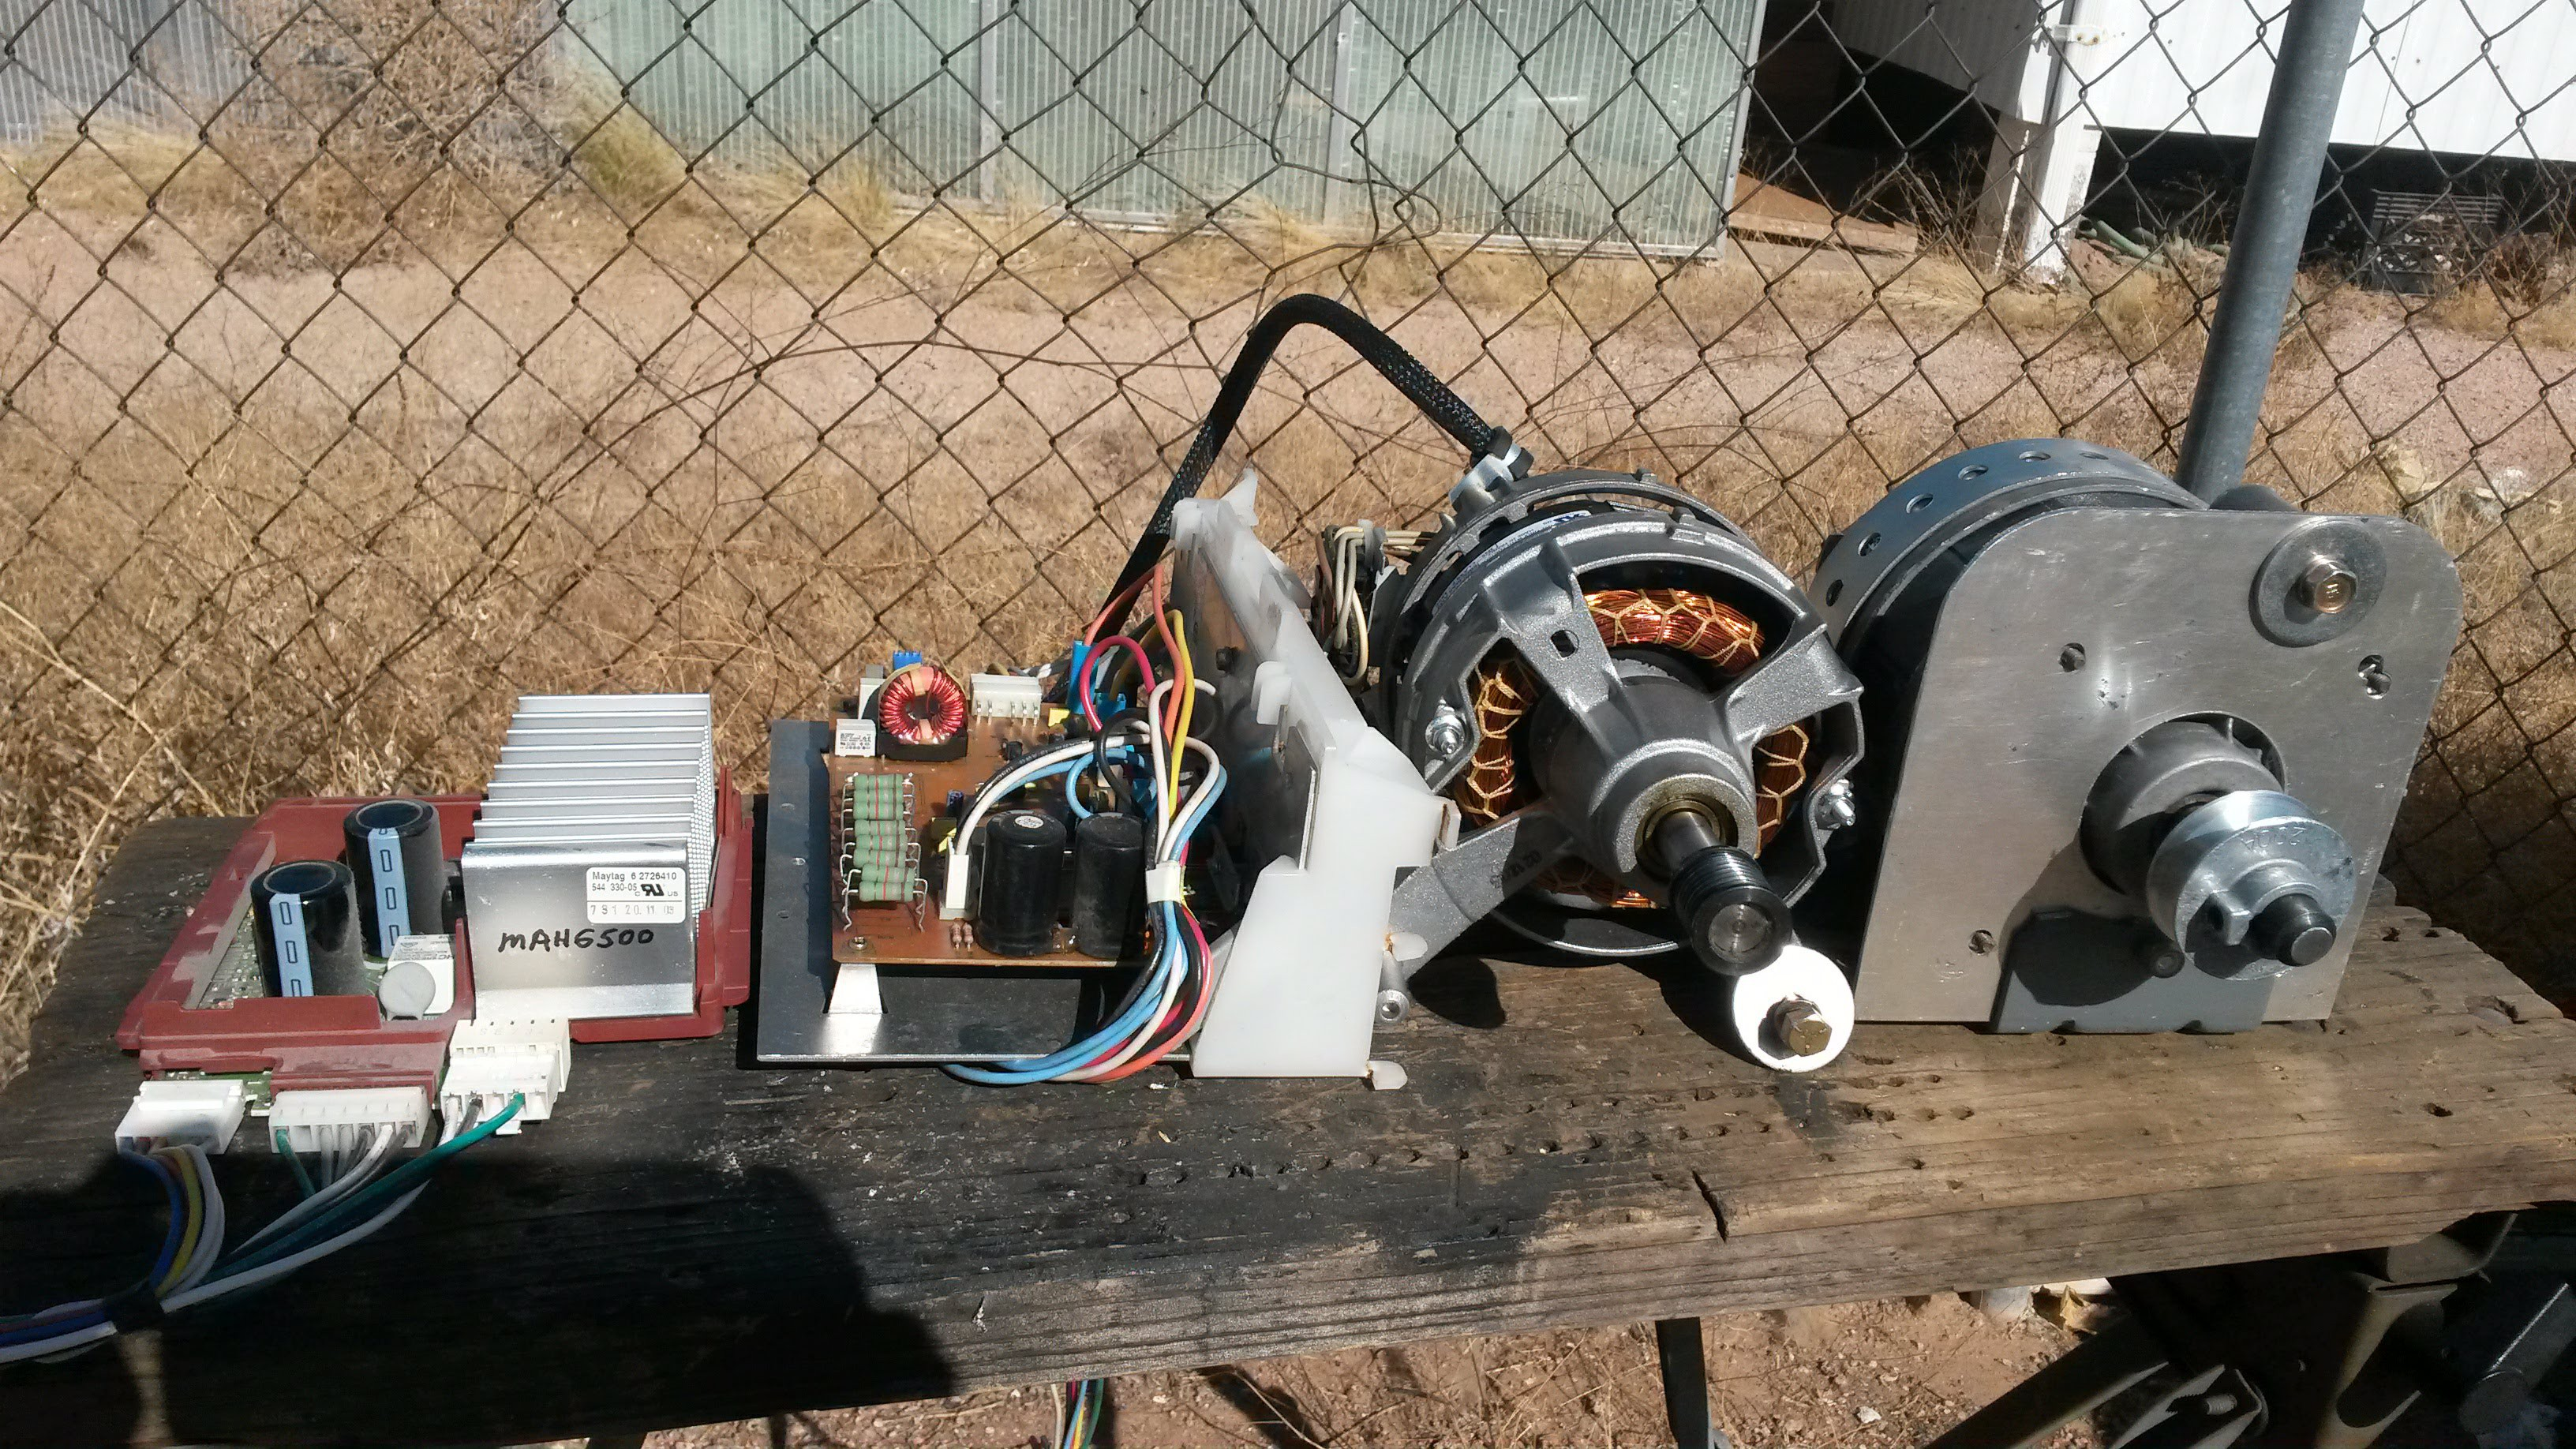 Maytag Neptune Motor Control Generator Project Both Speed Controls Will Work With The Same Pwm Signal Using An Arduino Or To Produce